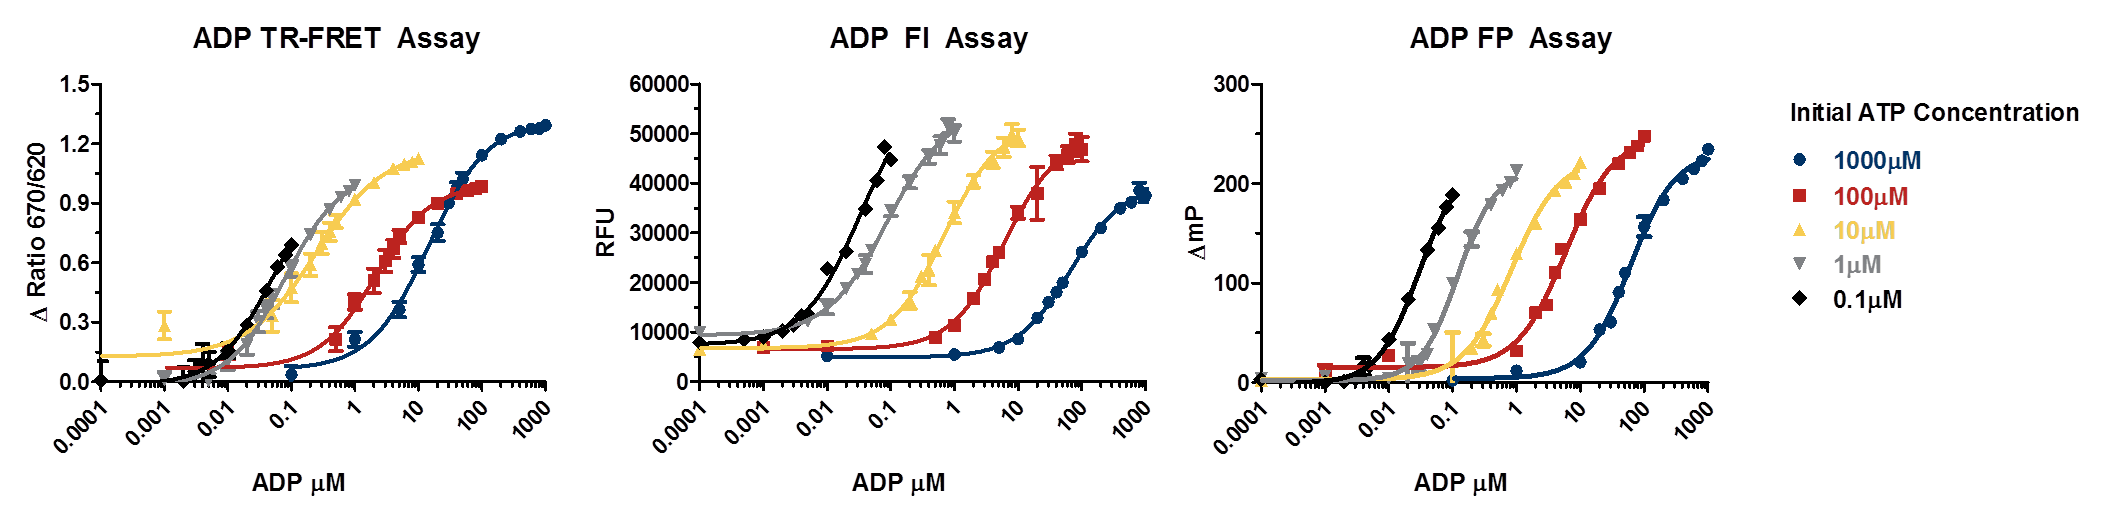 ADP ATPase Assay Detection Modes v6